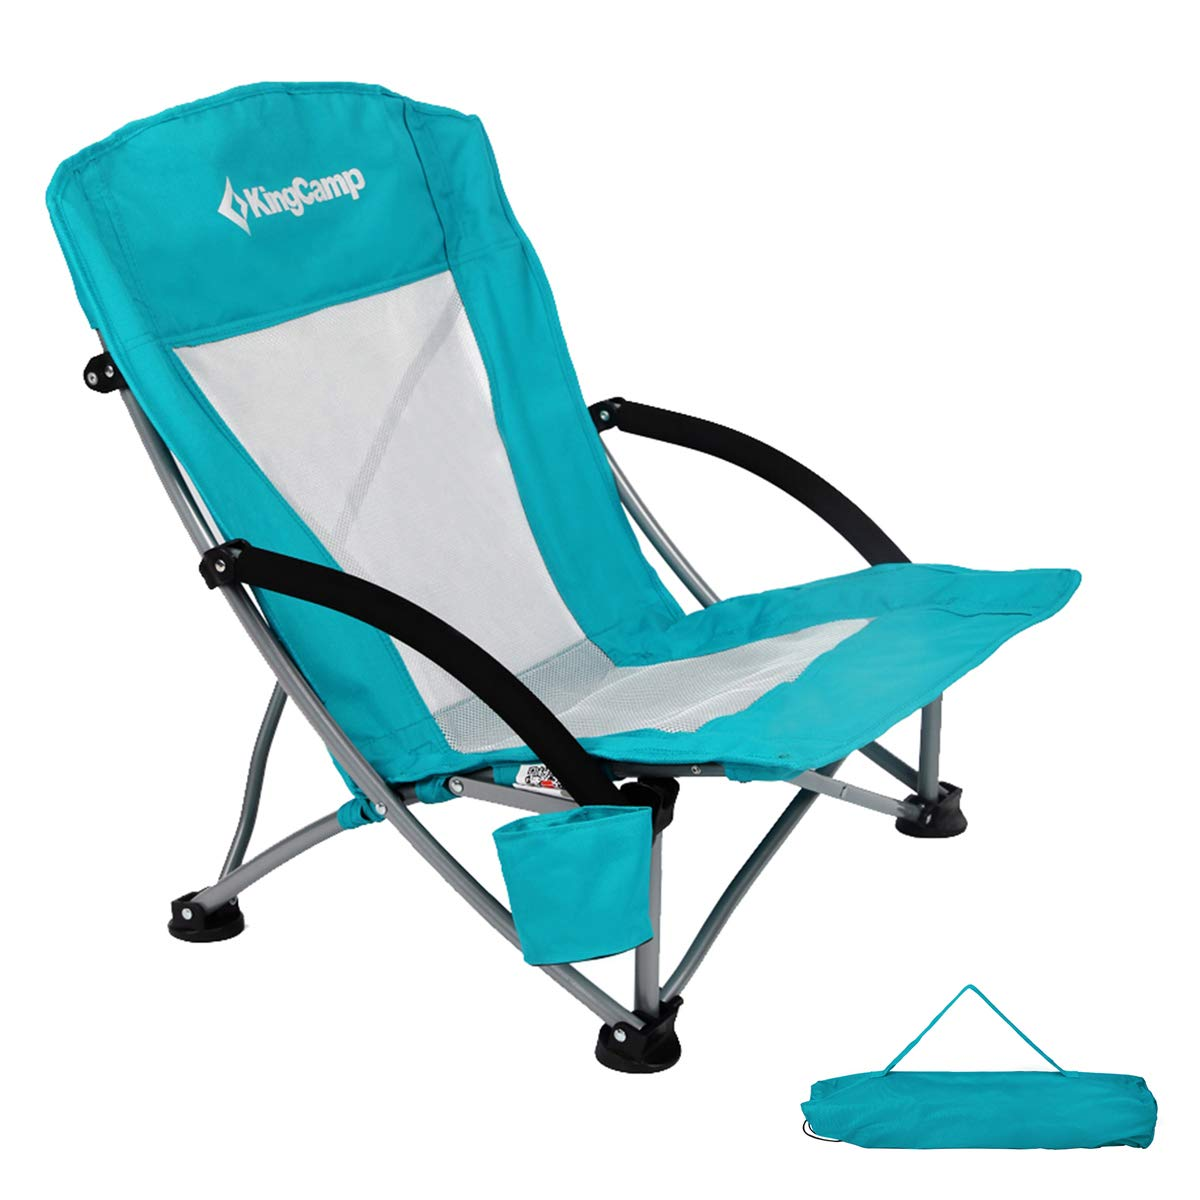 KingCamp Low Sling Beach Camping Folding Chair with Mesh Back